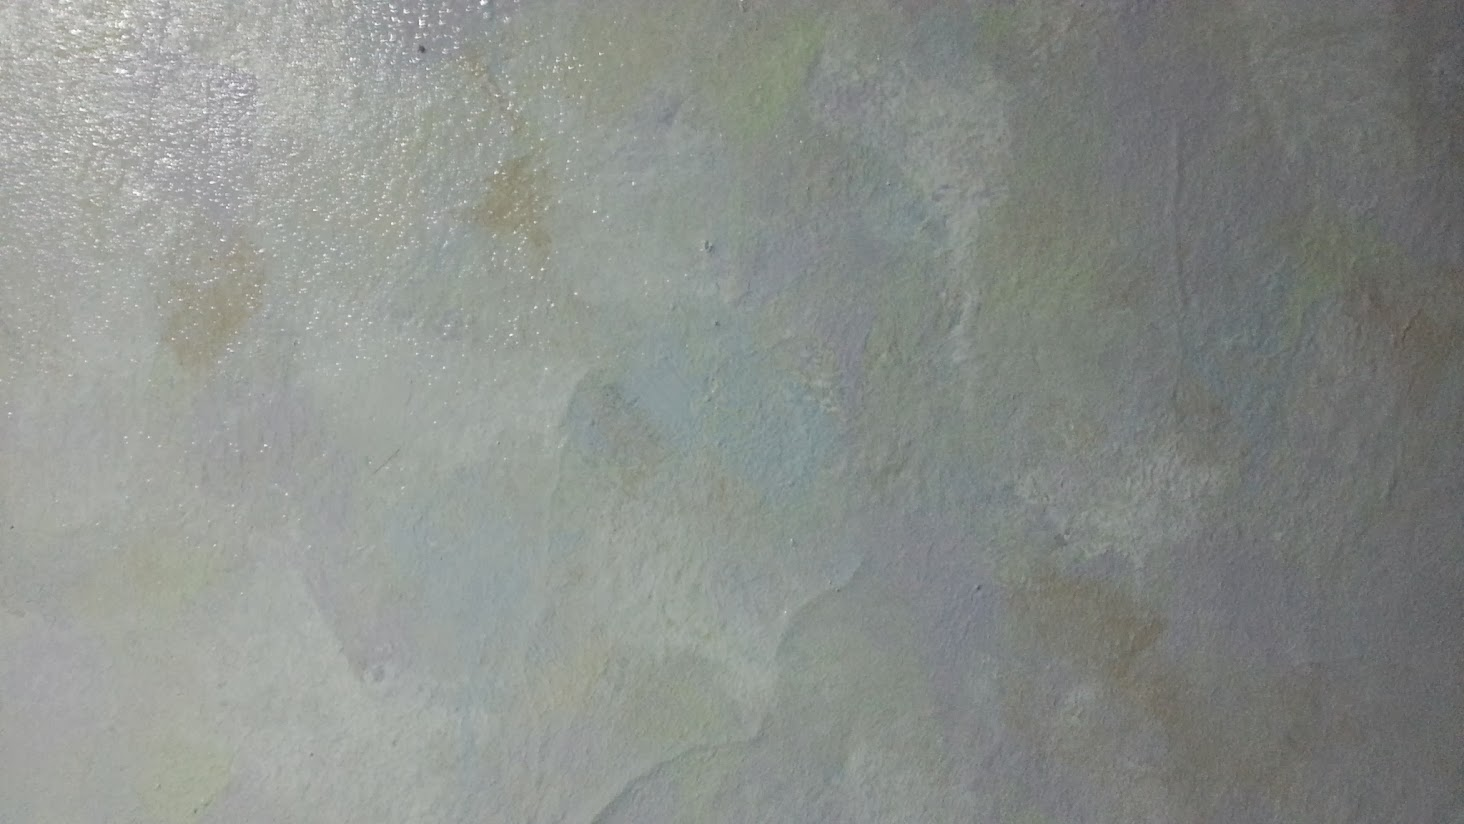 Multi-pastel paint smudged together on the wall